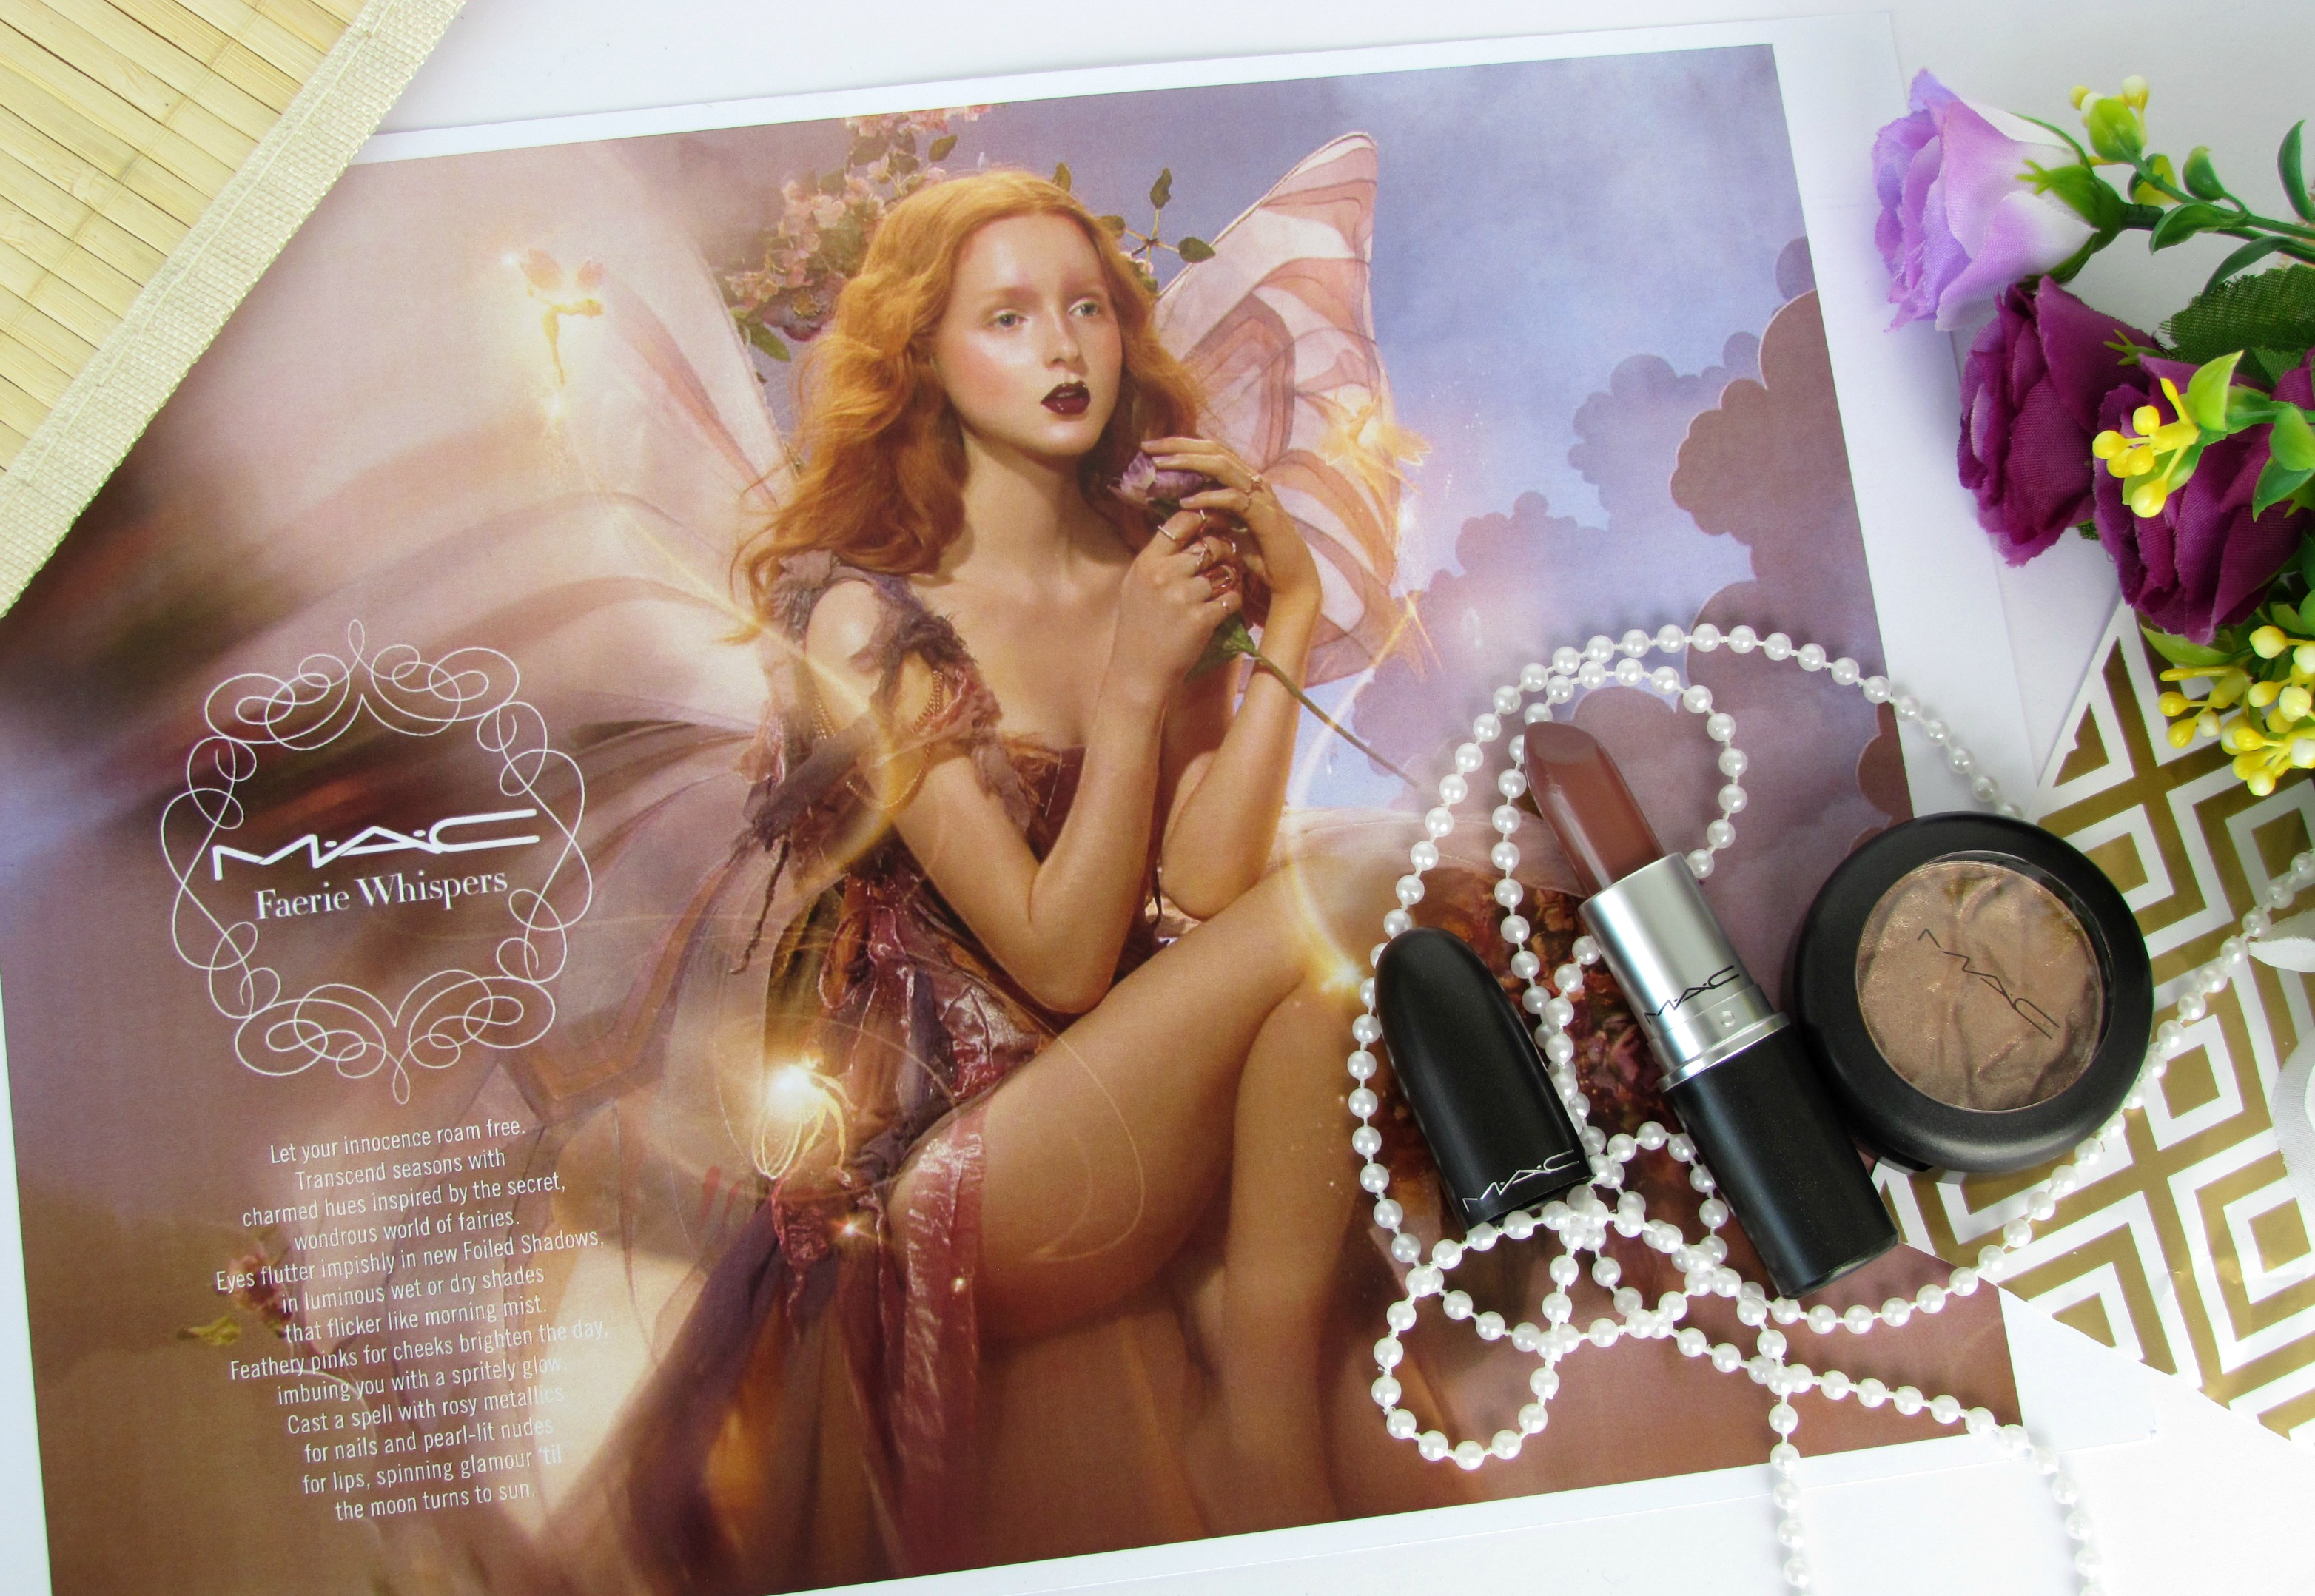 MAC Faerie Whispers Collection – Among The Fireflies Lipstick & Joy Toy Foiled Eye Shadow | Review